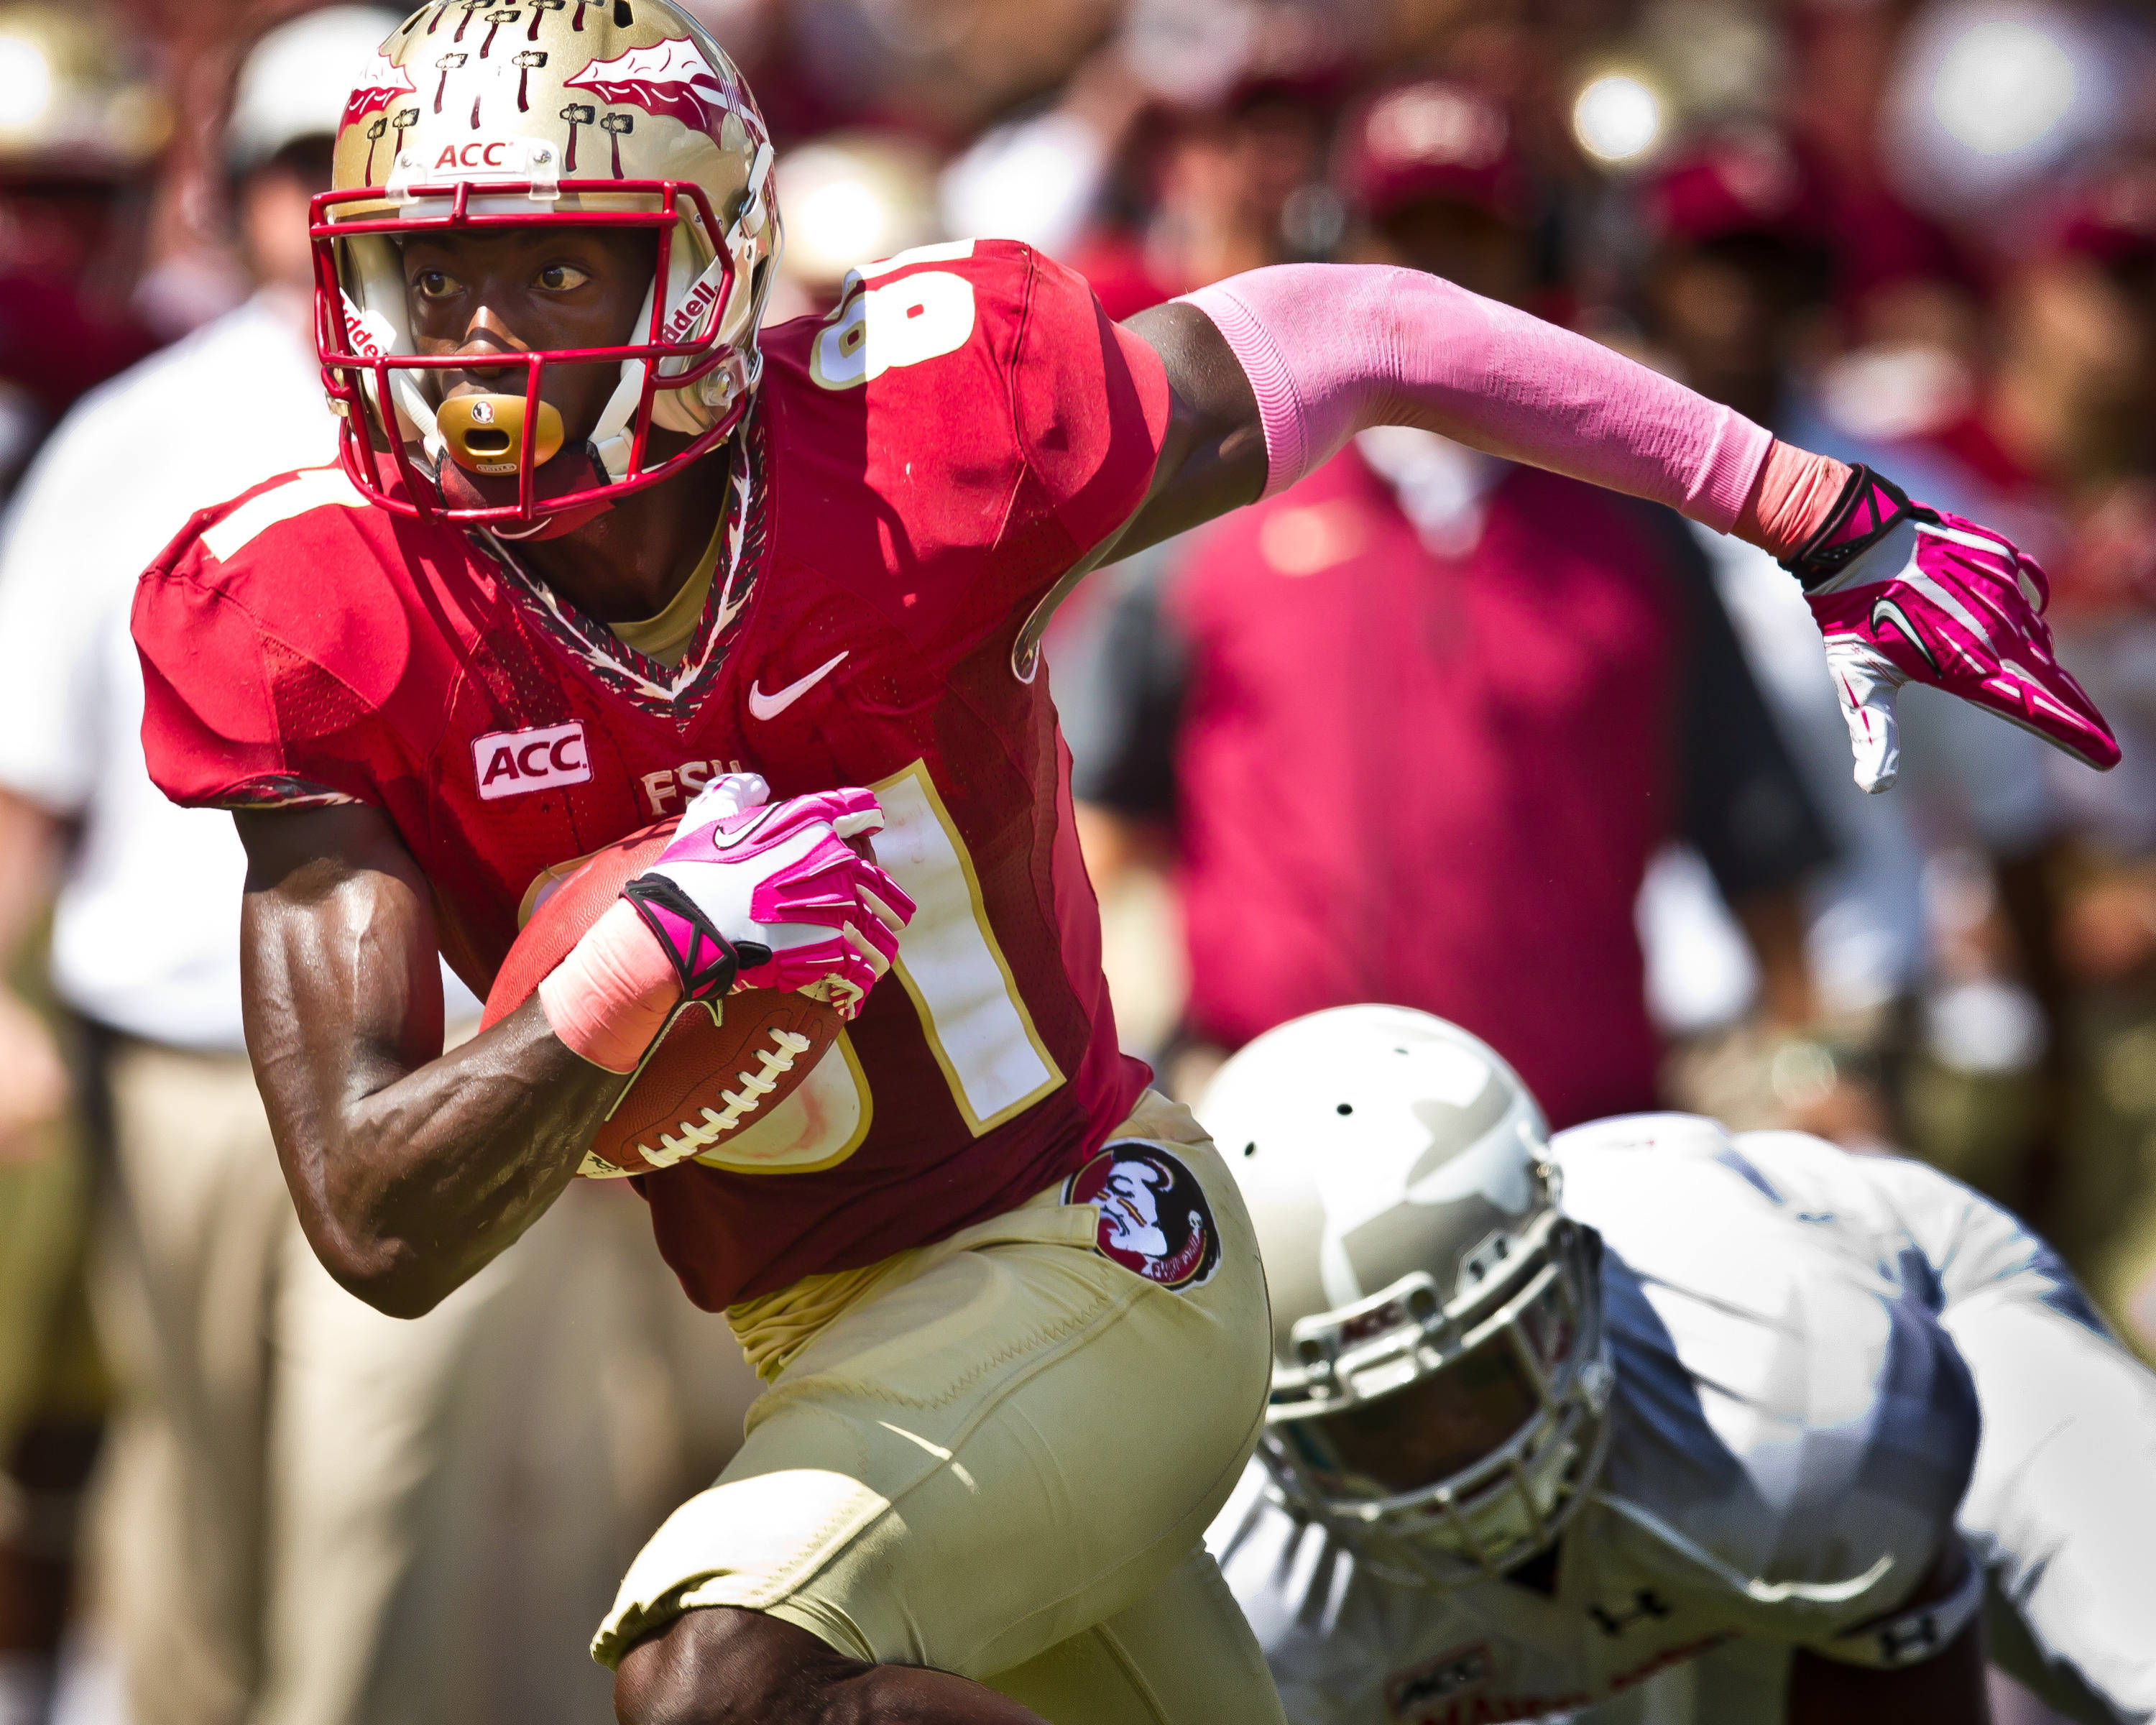 Kenny Shaw (81) recorded 5 catches and score 1 TD.